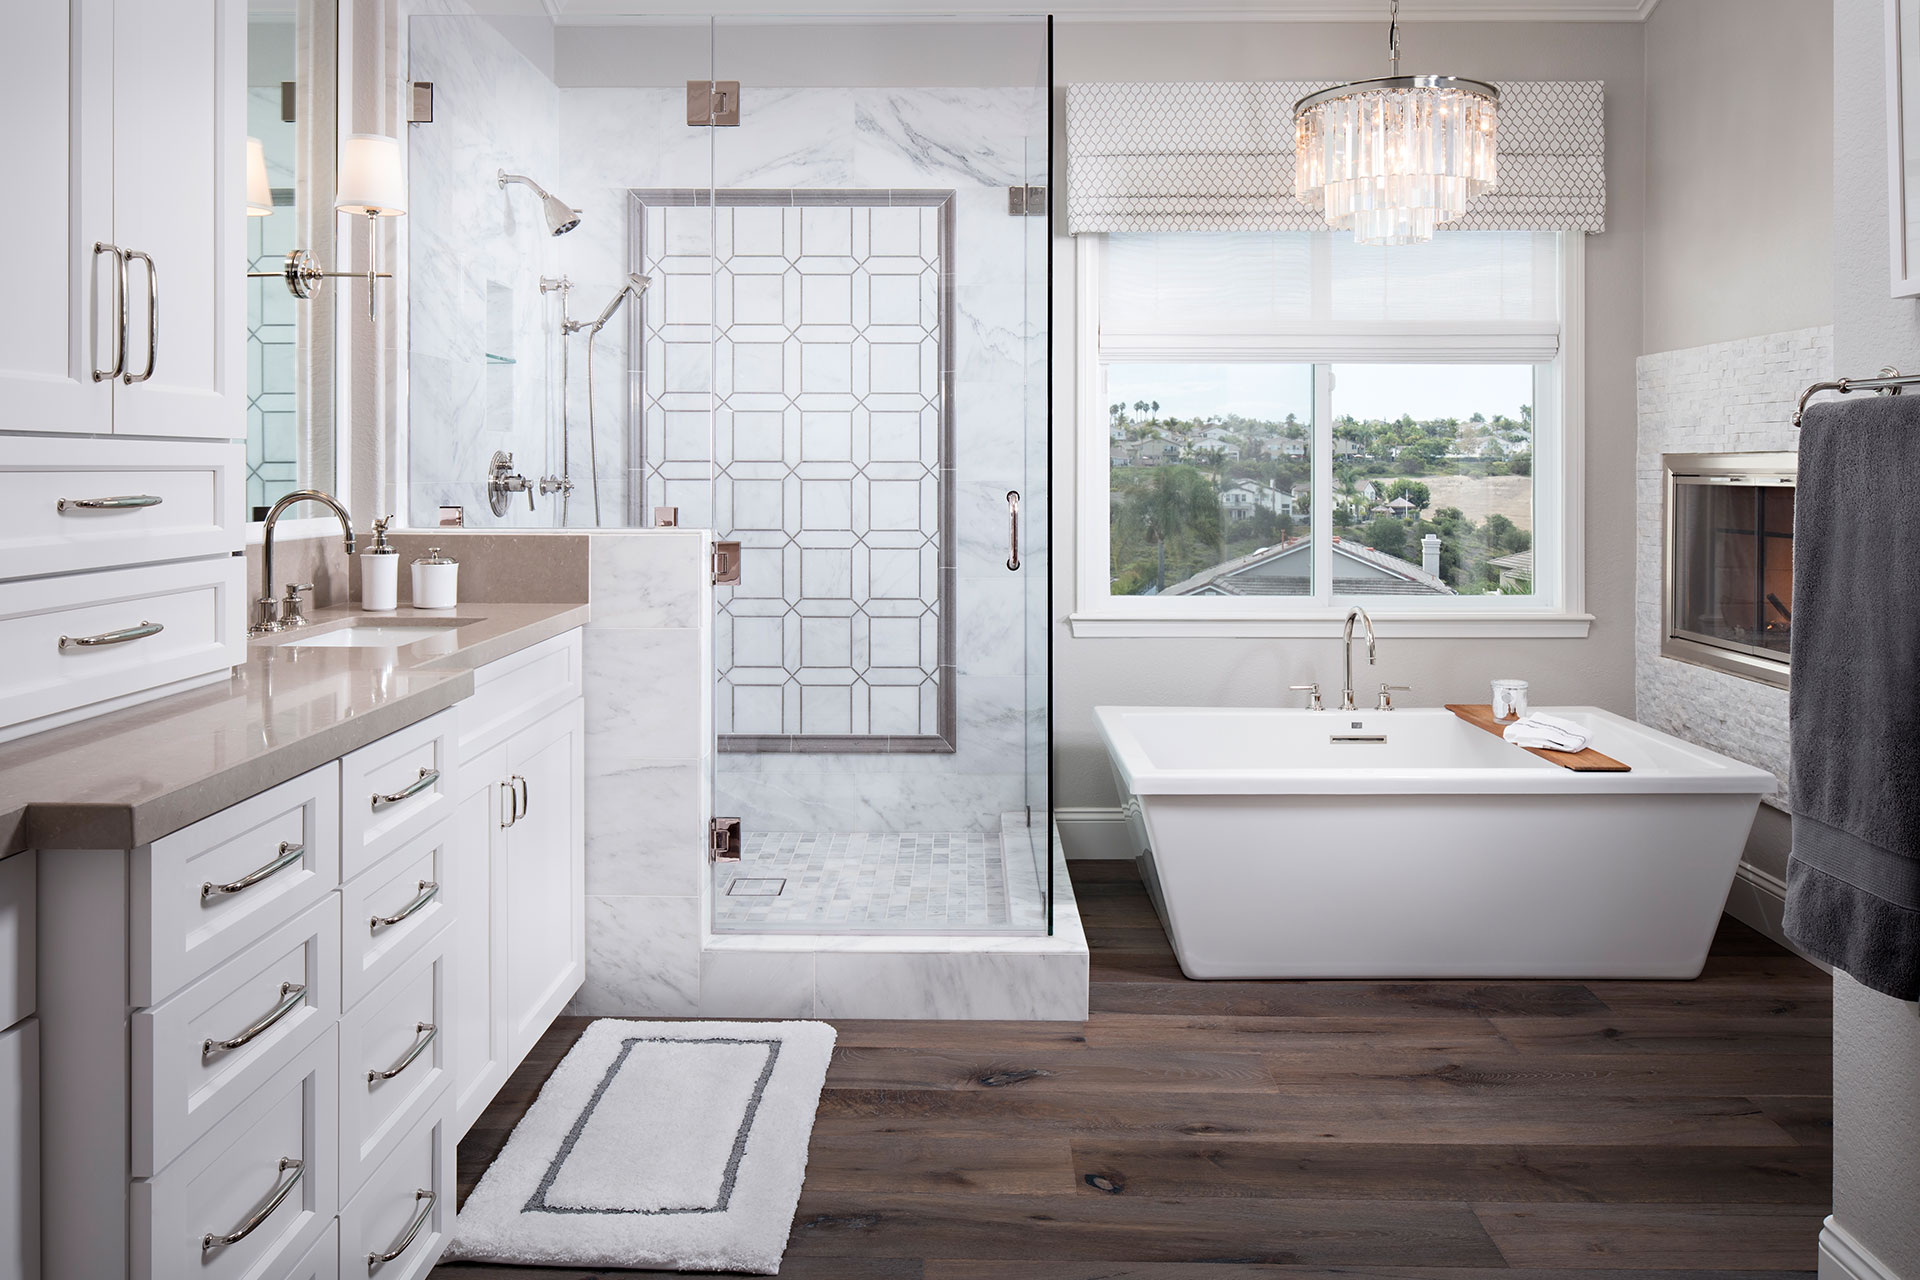 tracy lynn studio interior design in san diego - San Diego Bathroom Design